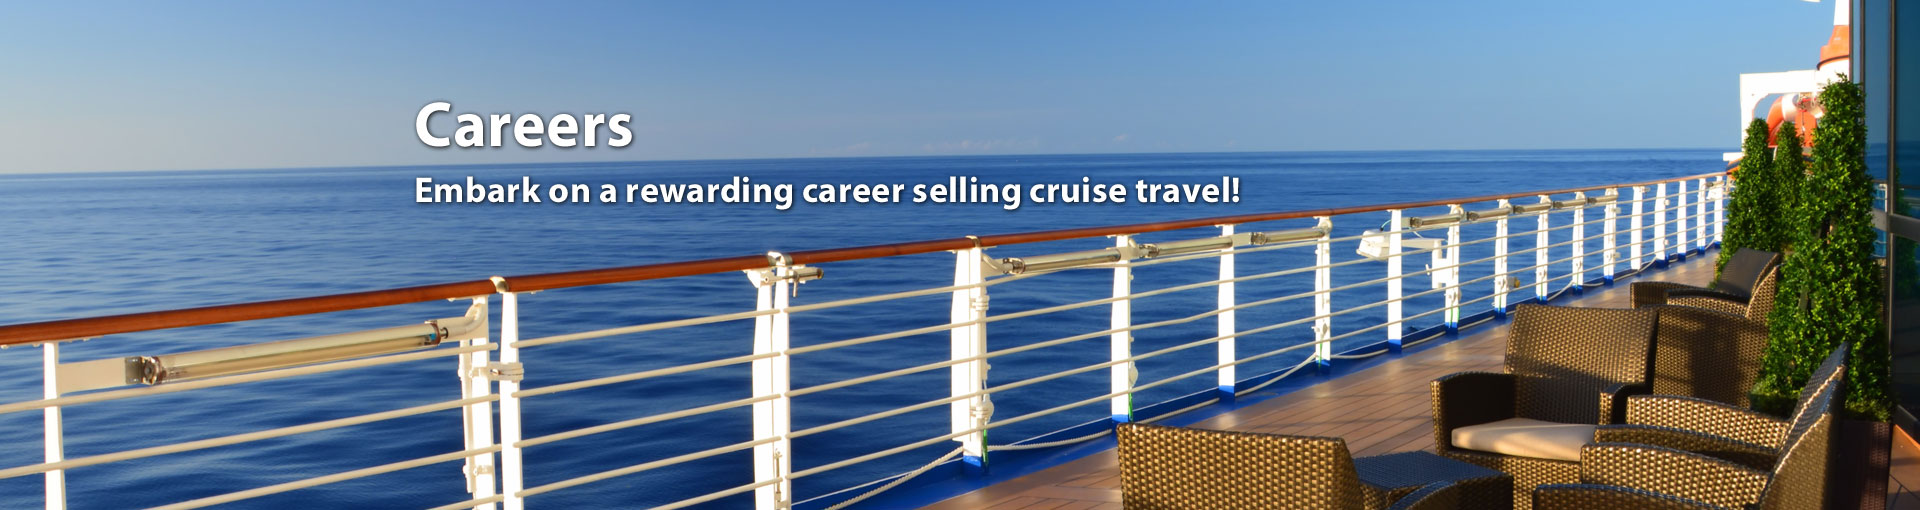 Careers at The Cruise Web